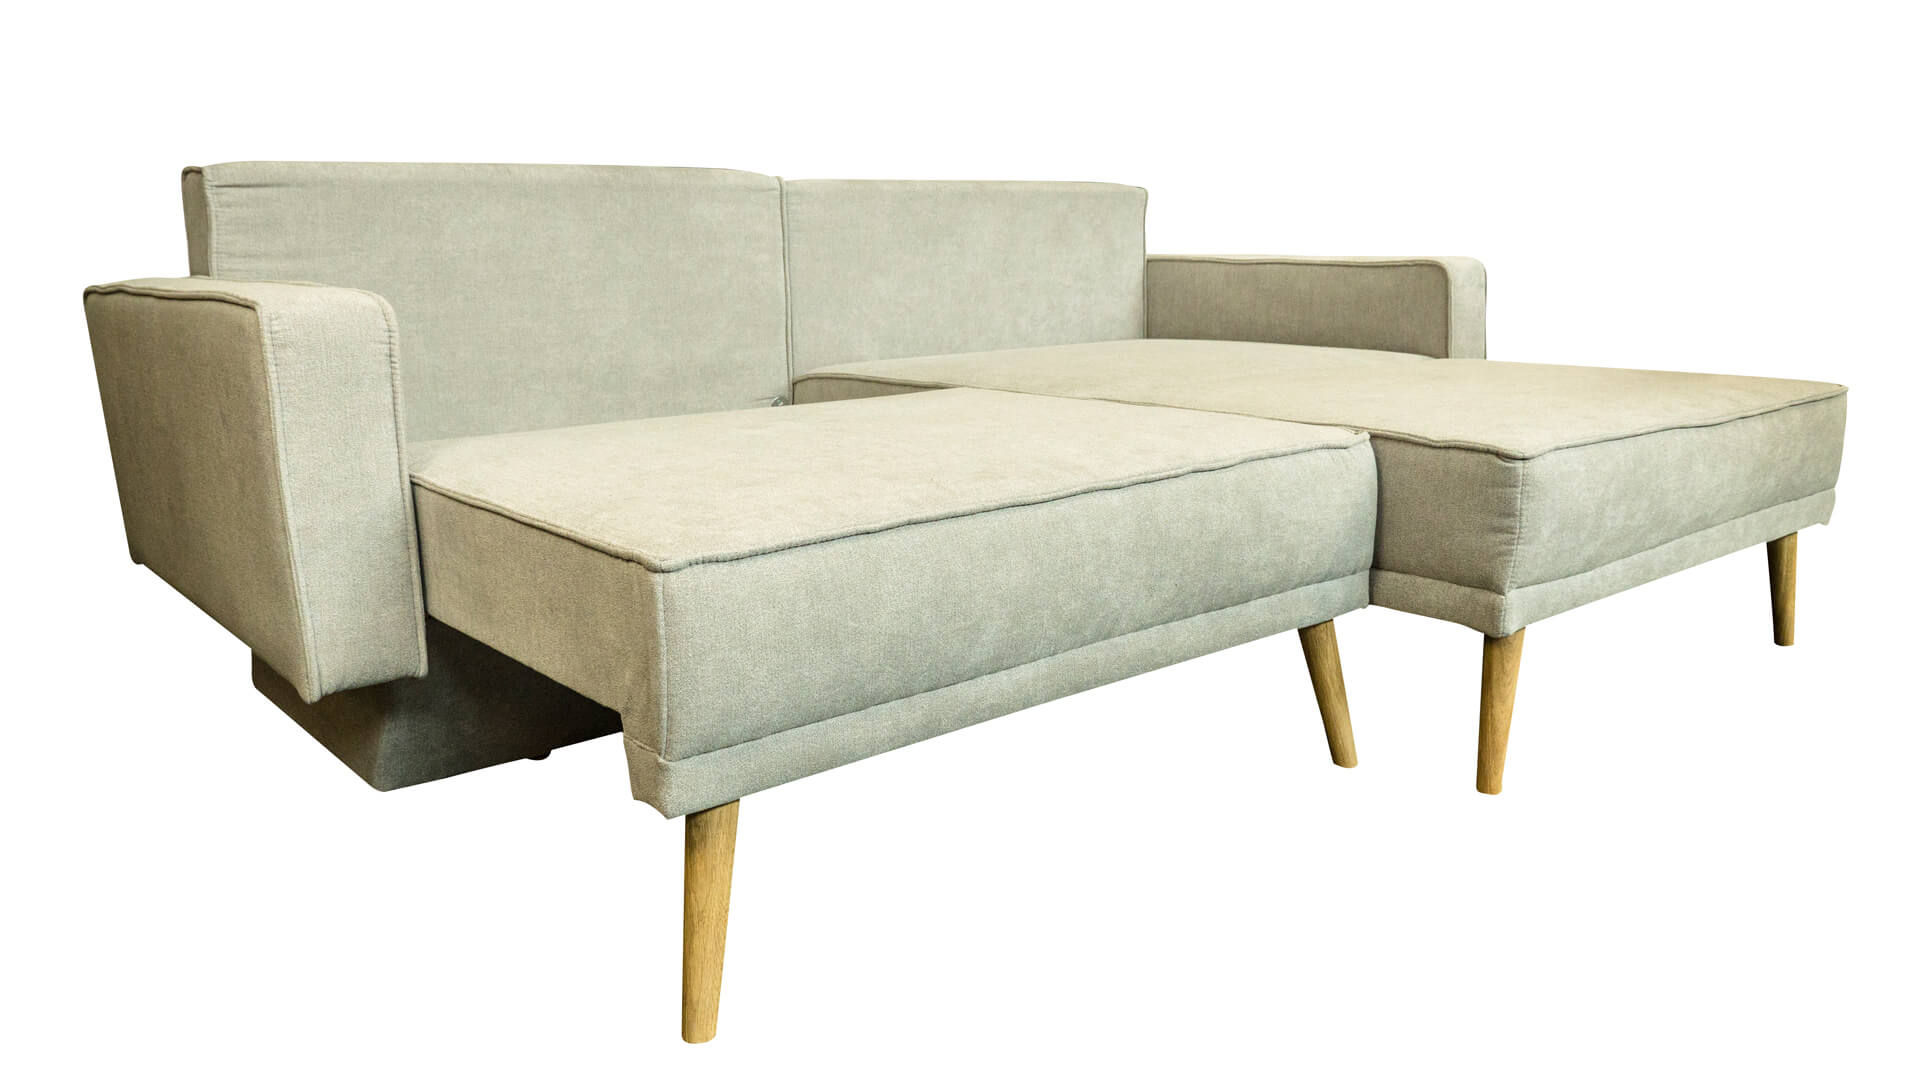 Couch Skandinavisch Sofa Schlaffunktion Skandinavisch Review Home Co